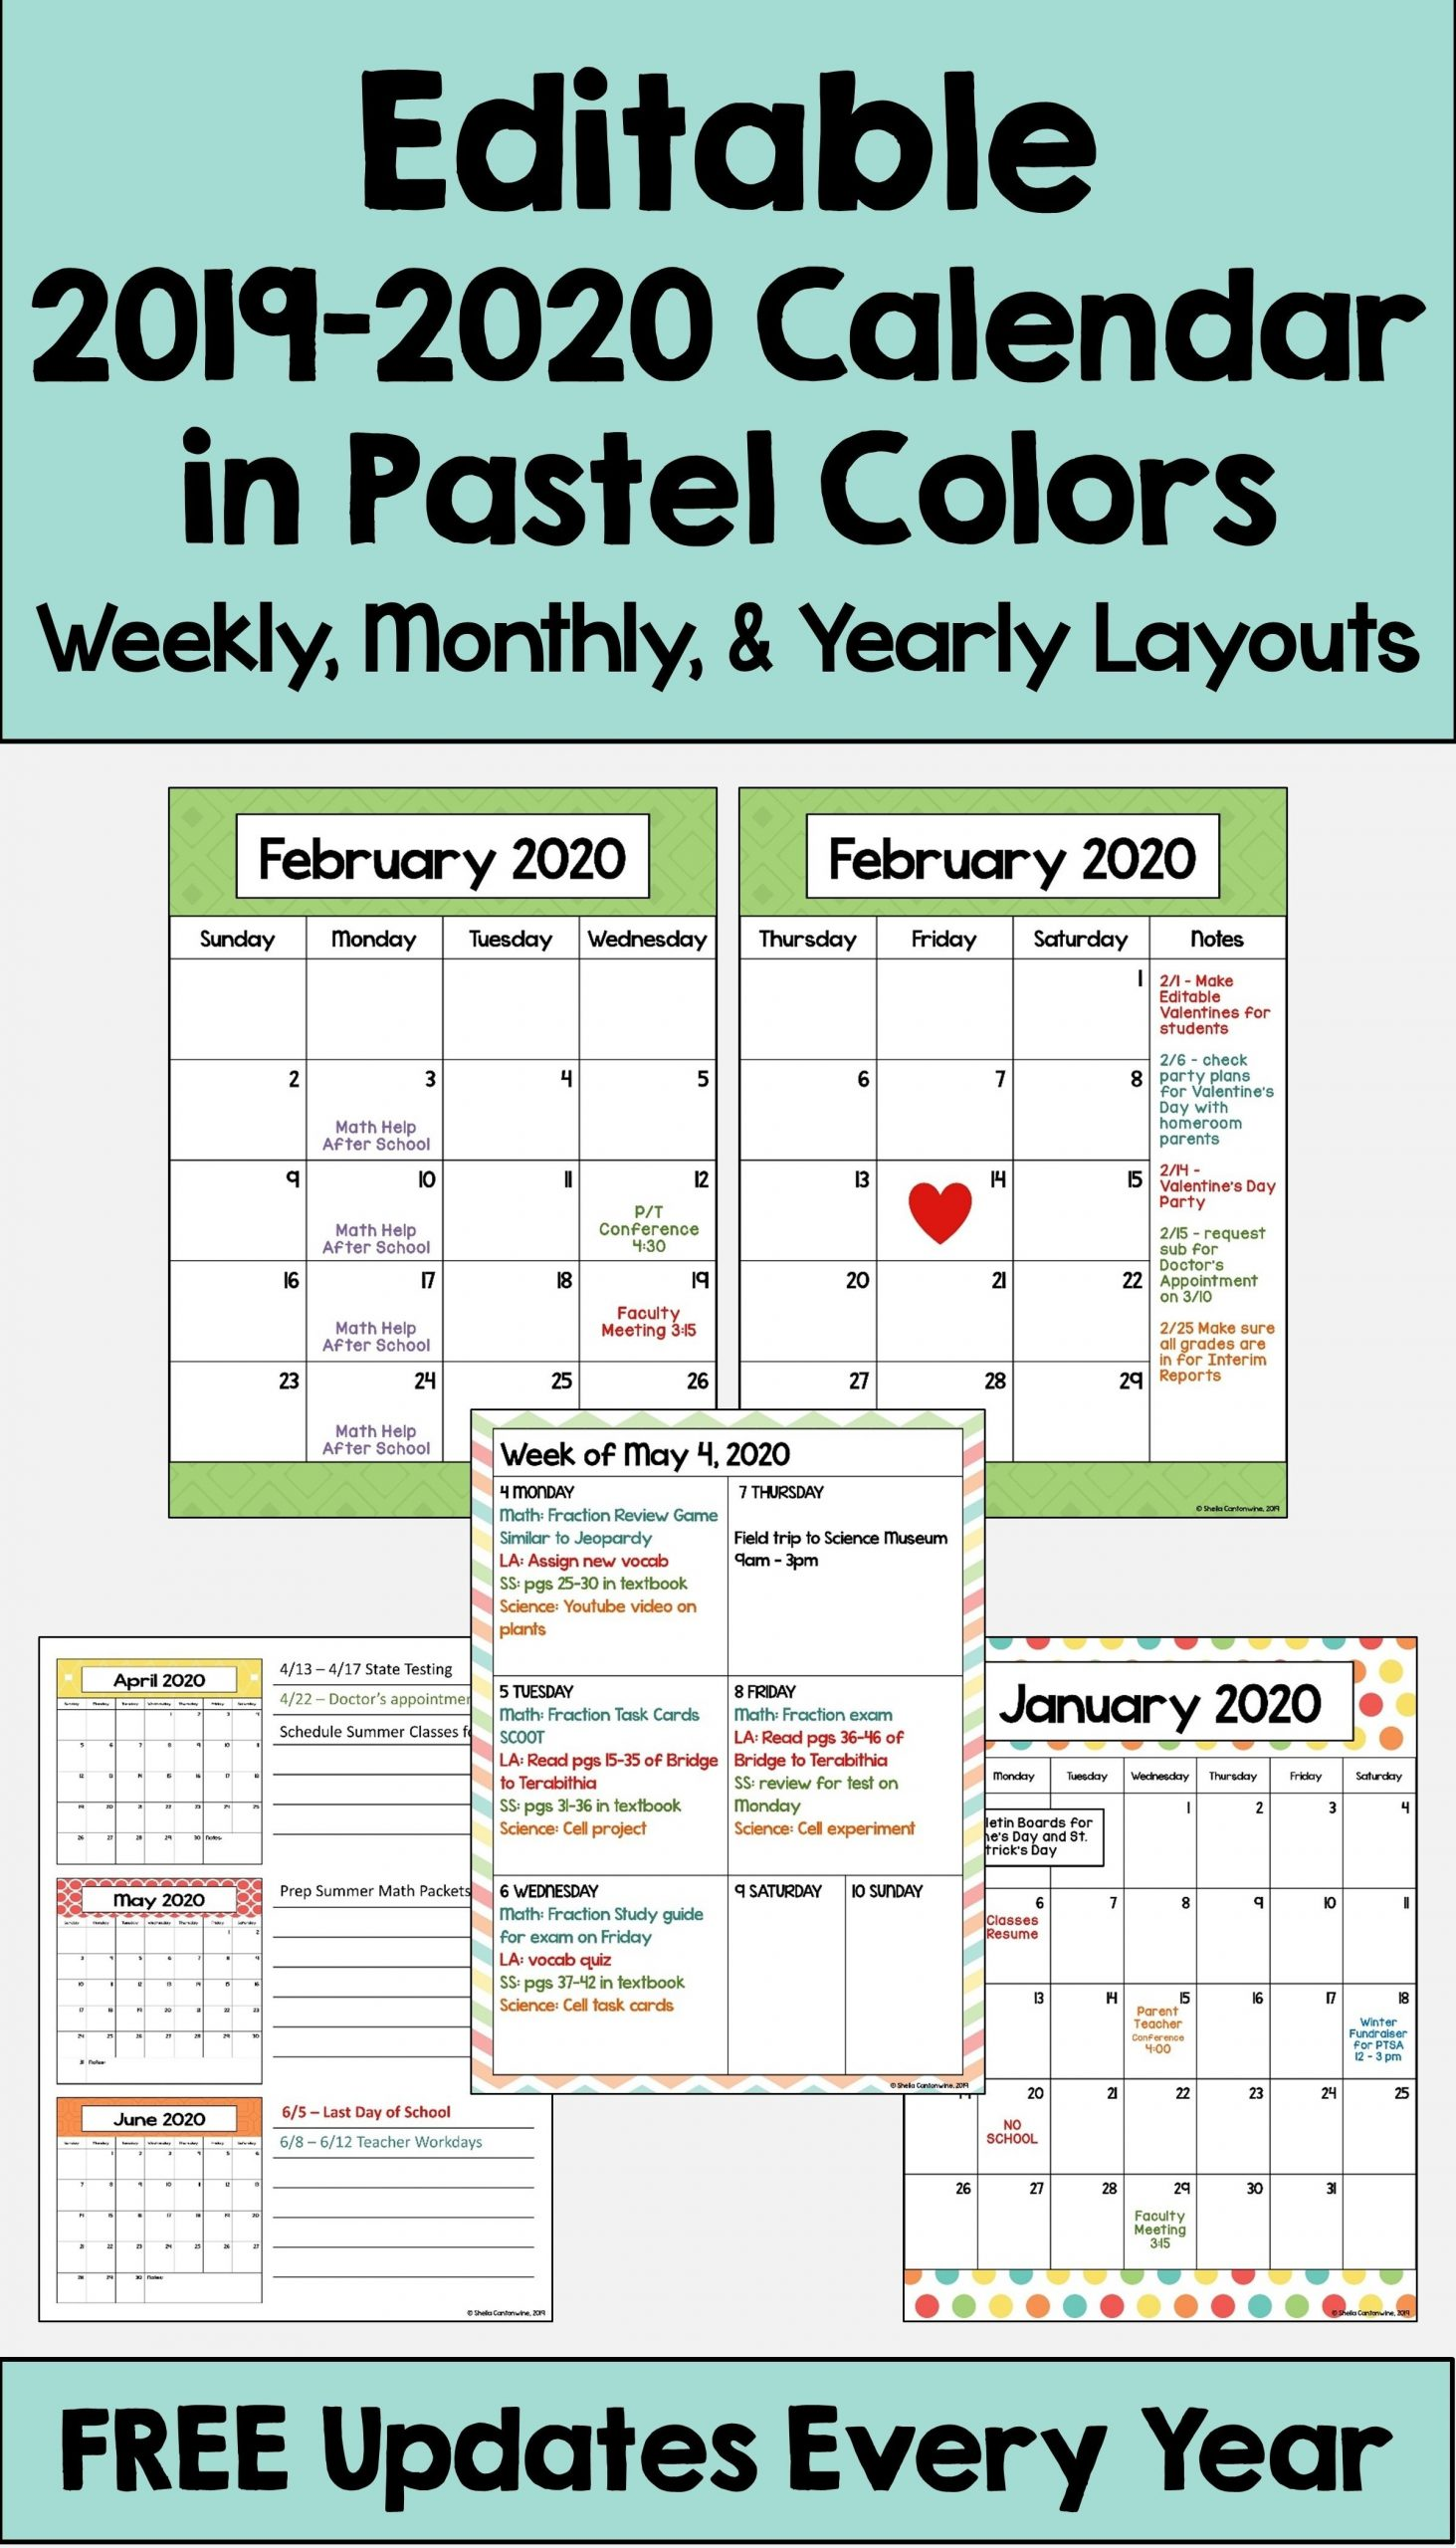 2020-2021 Calendar Printable And Editable With Free Updates In Pastel Colors | Editable Calendar